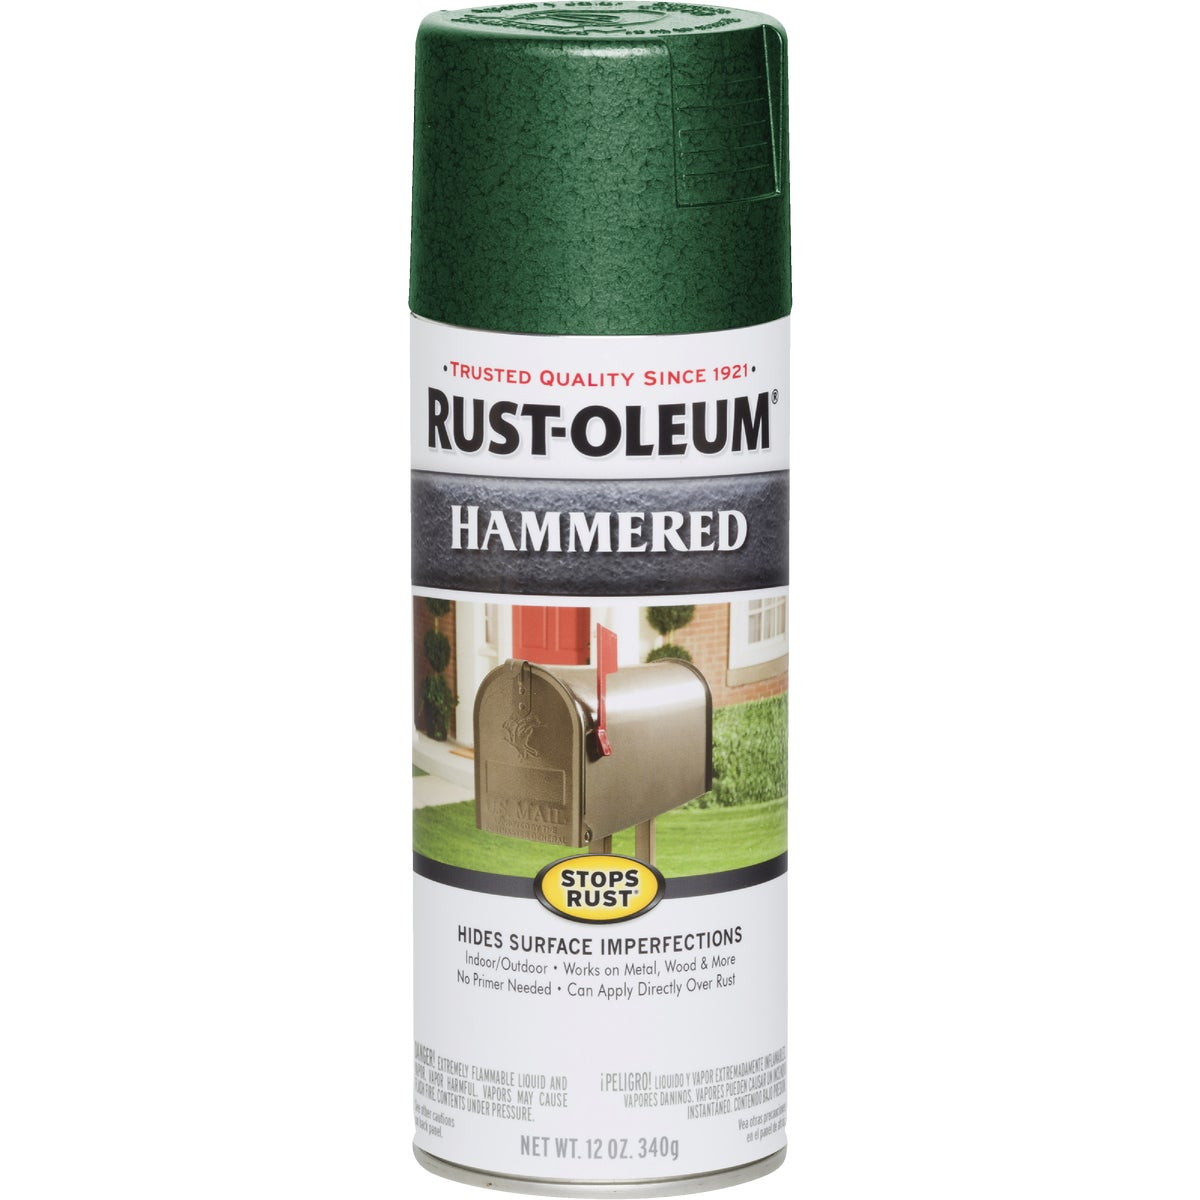 D GRN HAMMRD SPRAY PAINT - 7211-830 by Rustoleum